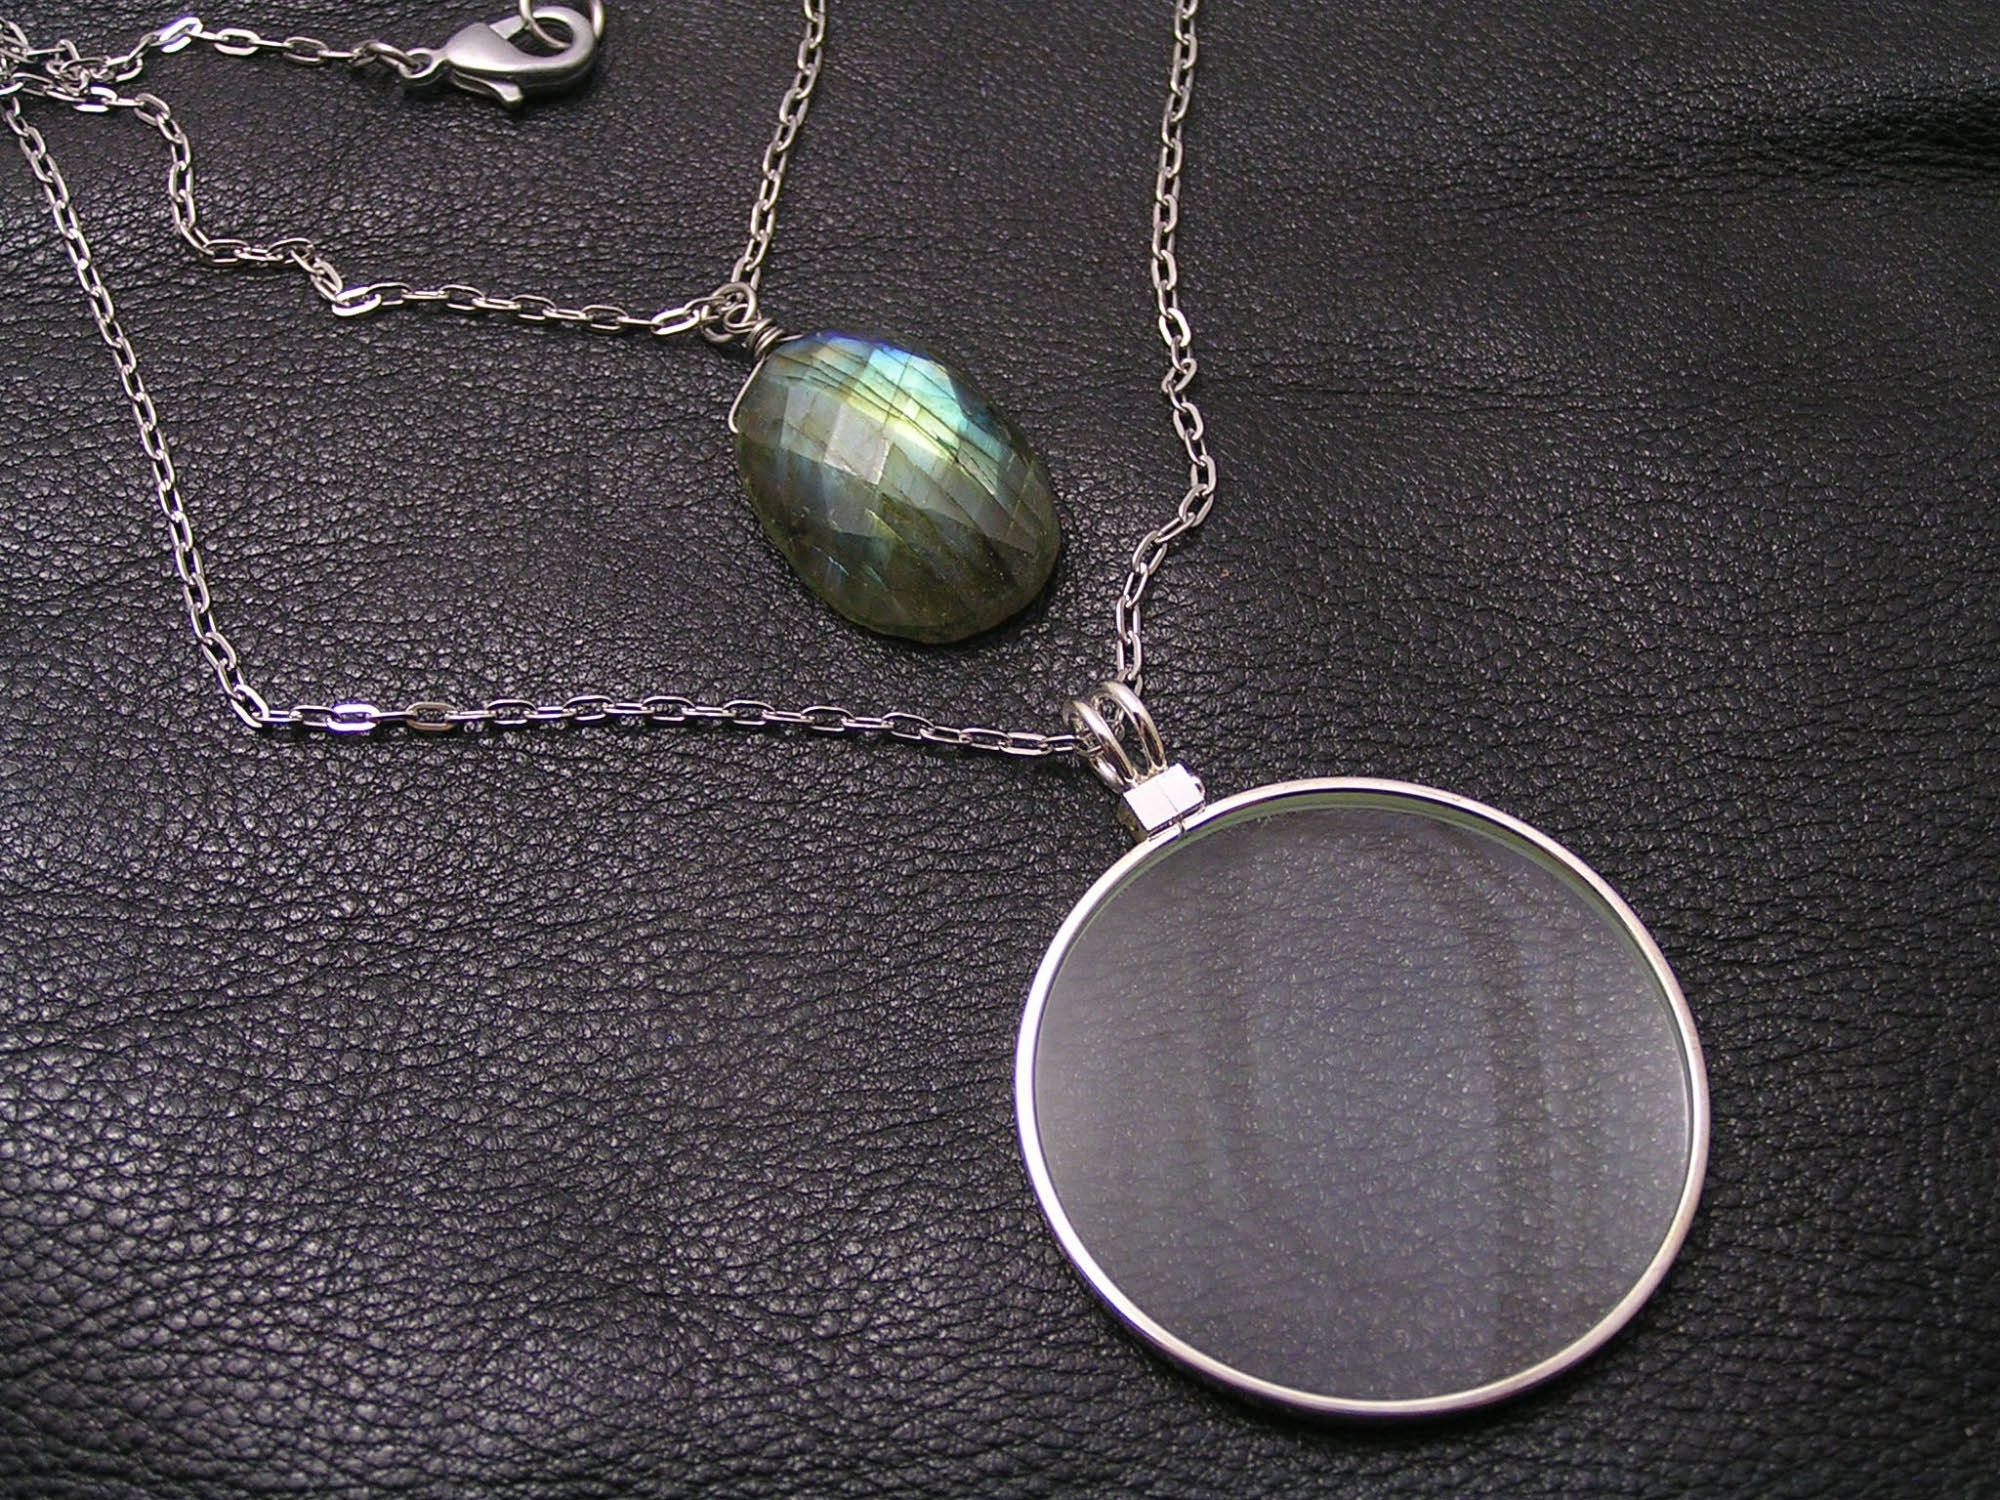 Loupe Necklace Monocle Necklace Magnifying Glass Necklace Long Necklace